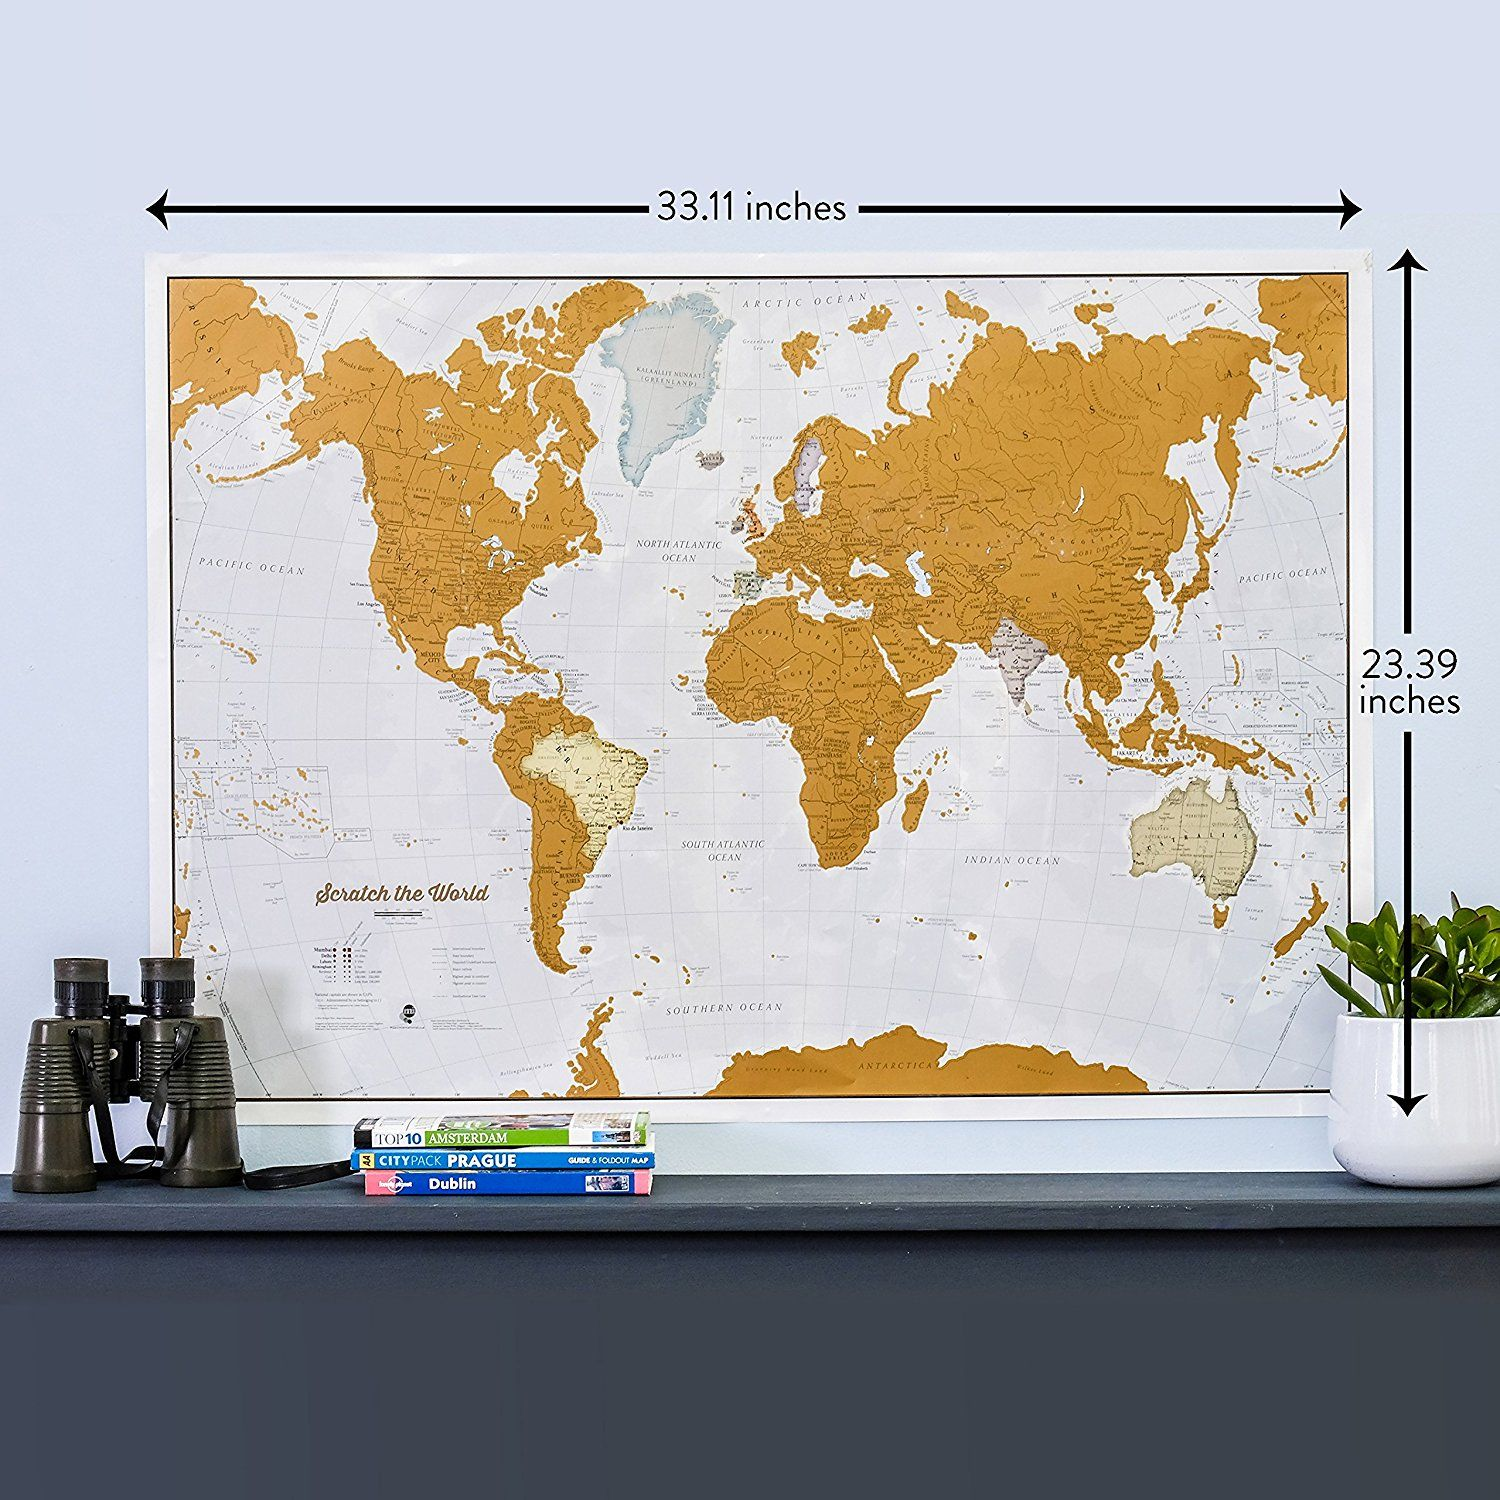 Amazon scratch the world scratch off places you travel amazon scratch the world scratch off places you travel world map gumiabroncs Choice Image